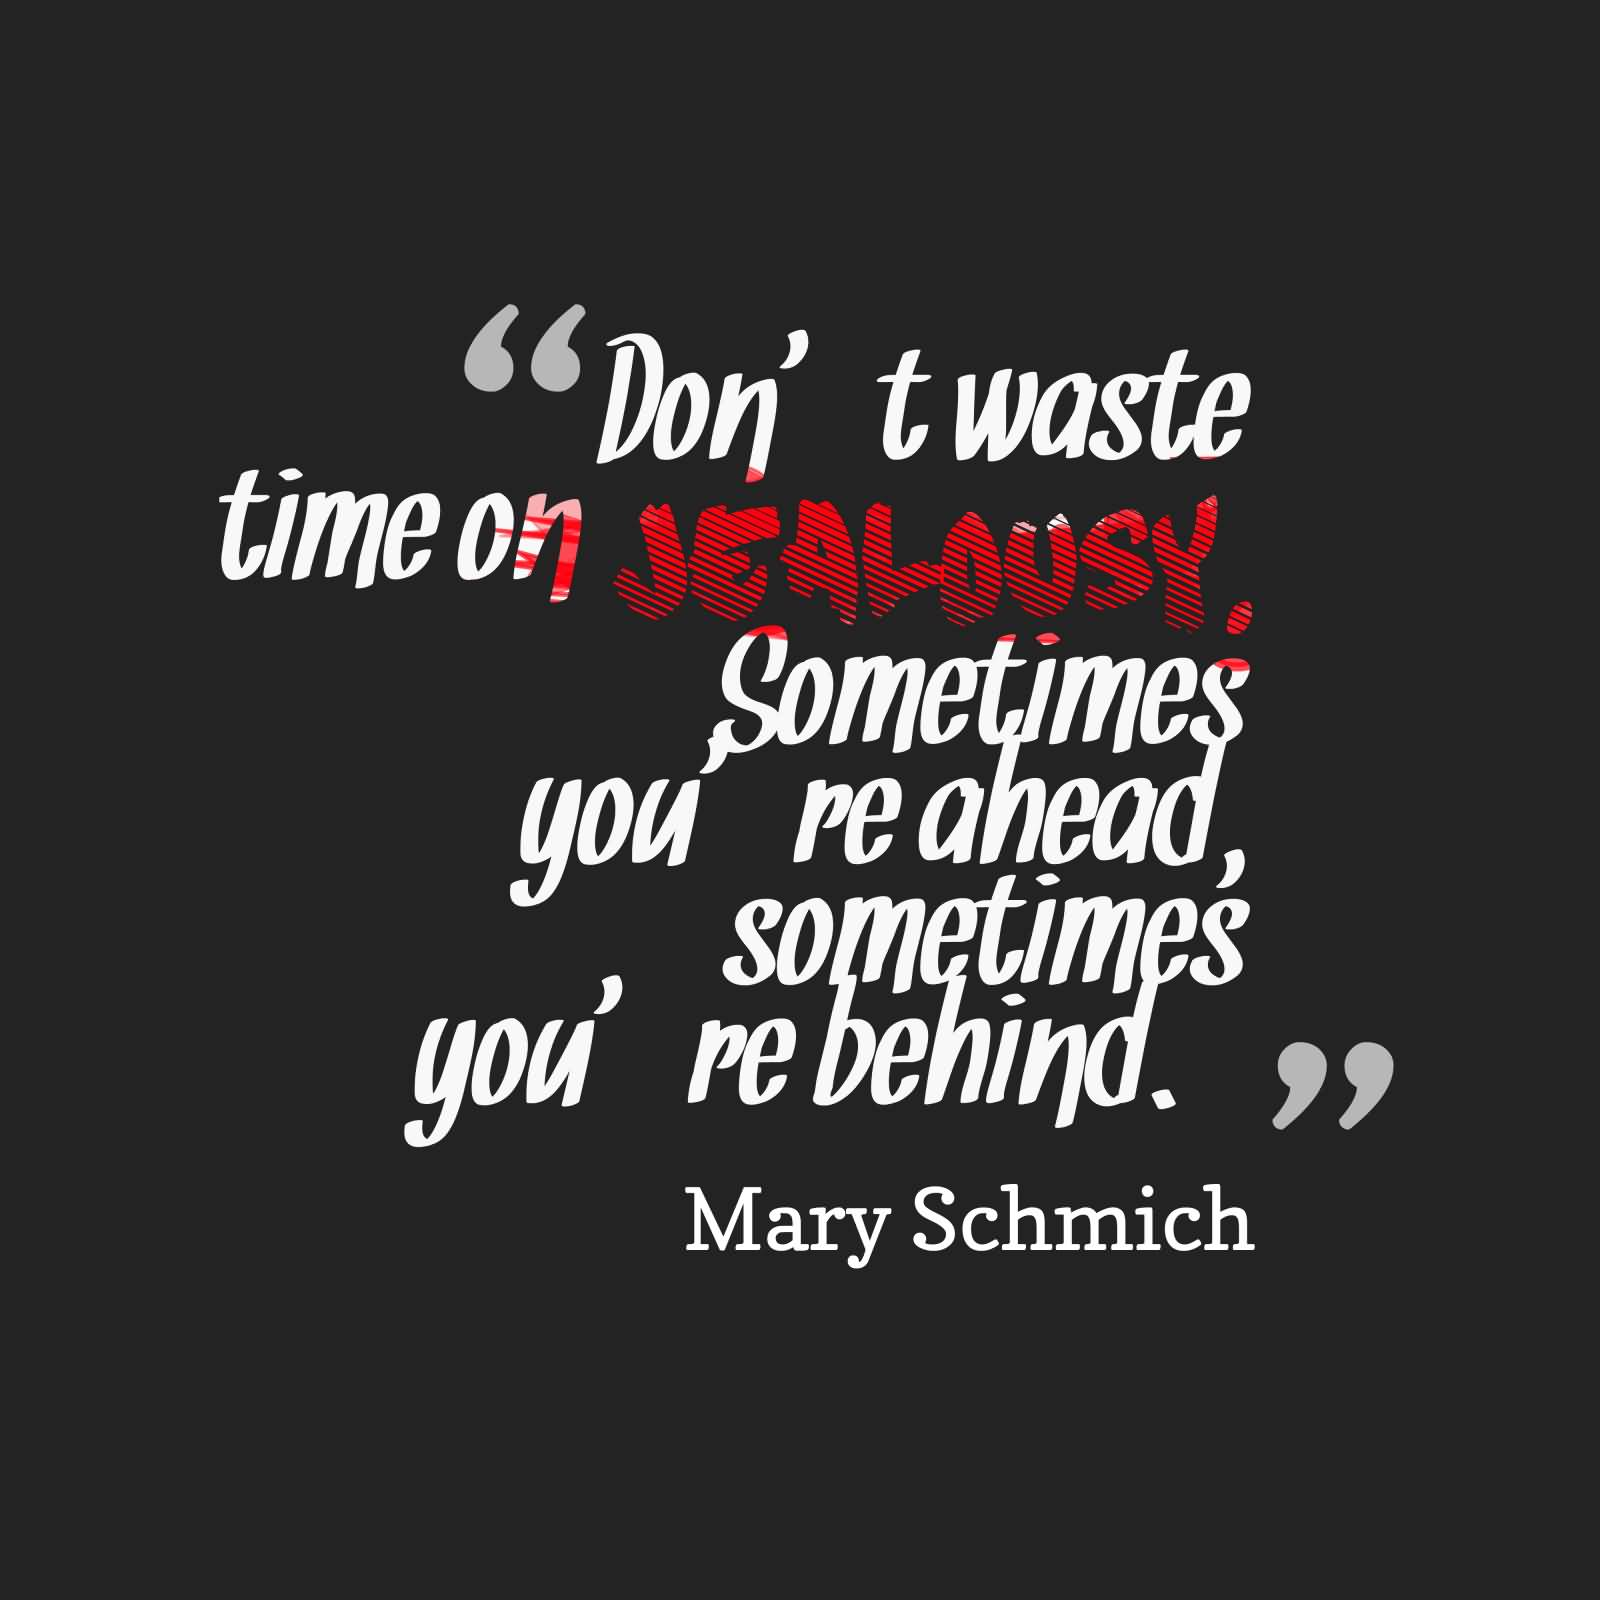 Don't waste your time on jealousy. Sometimes you're ahead, sometimes you're behind. - Mary Schmich